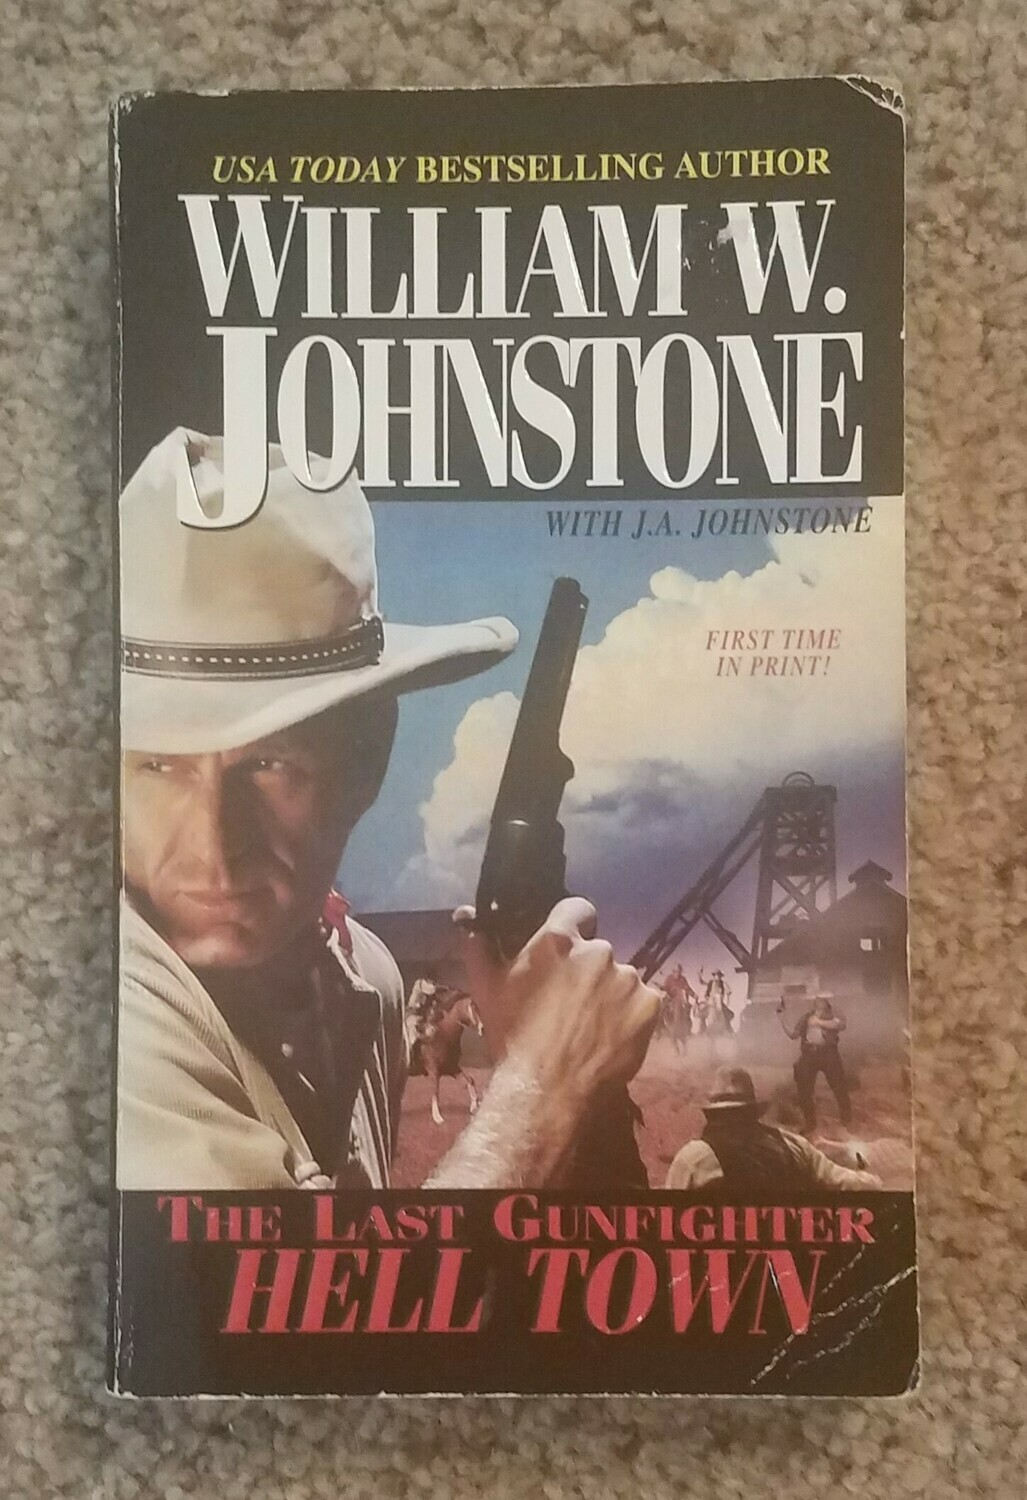 The Last Gunfighter: Hell Town by William W. Johnstone